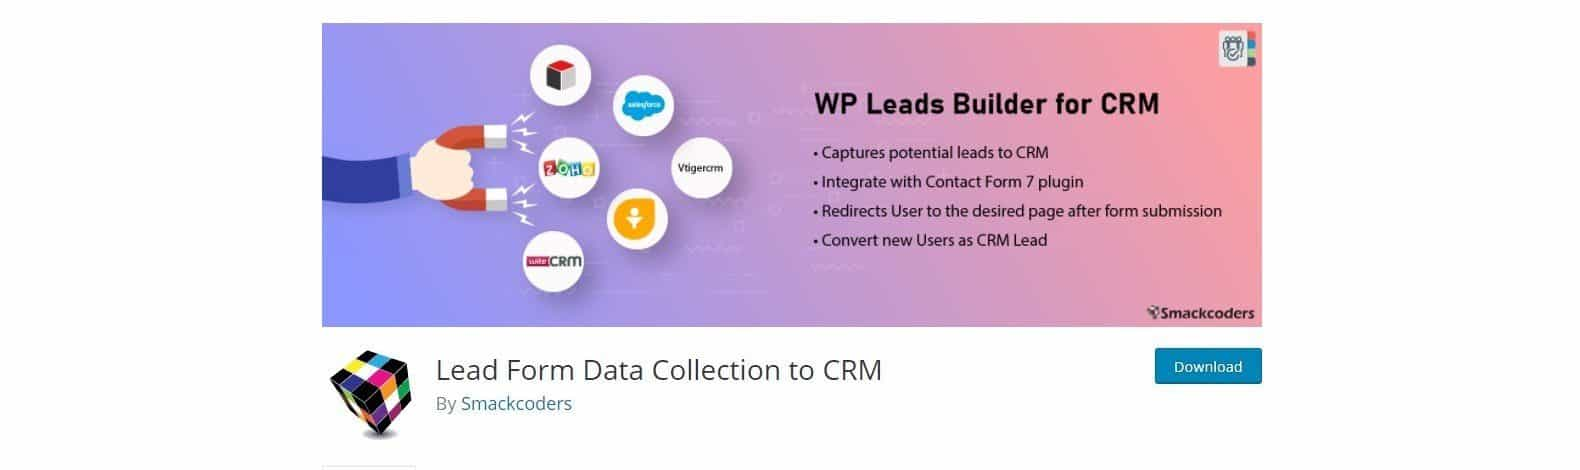 Lead Form Data Collection to CRM